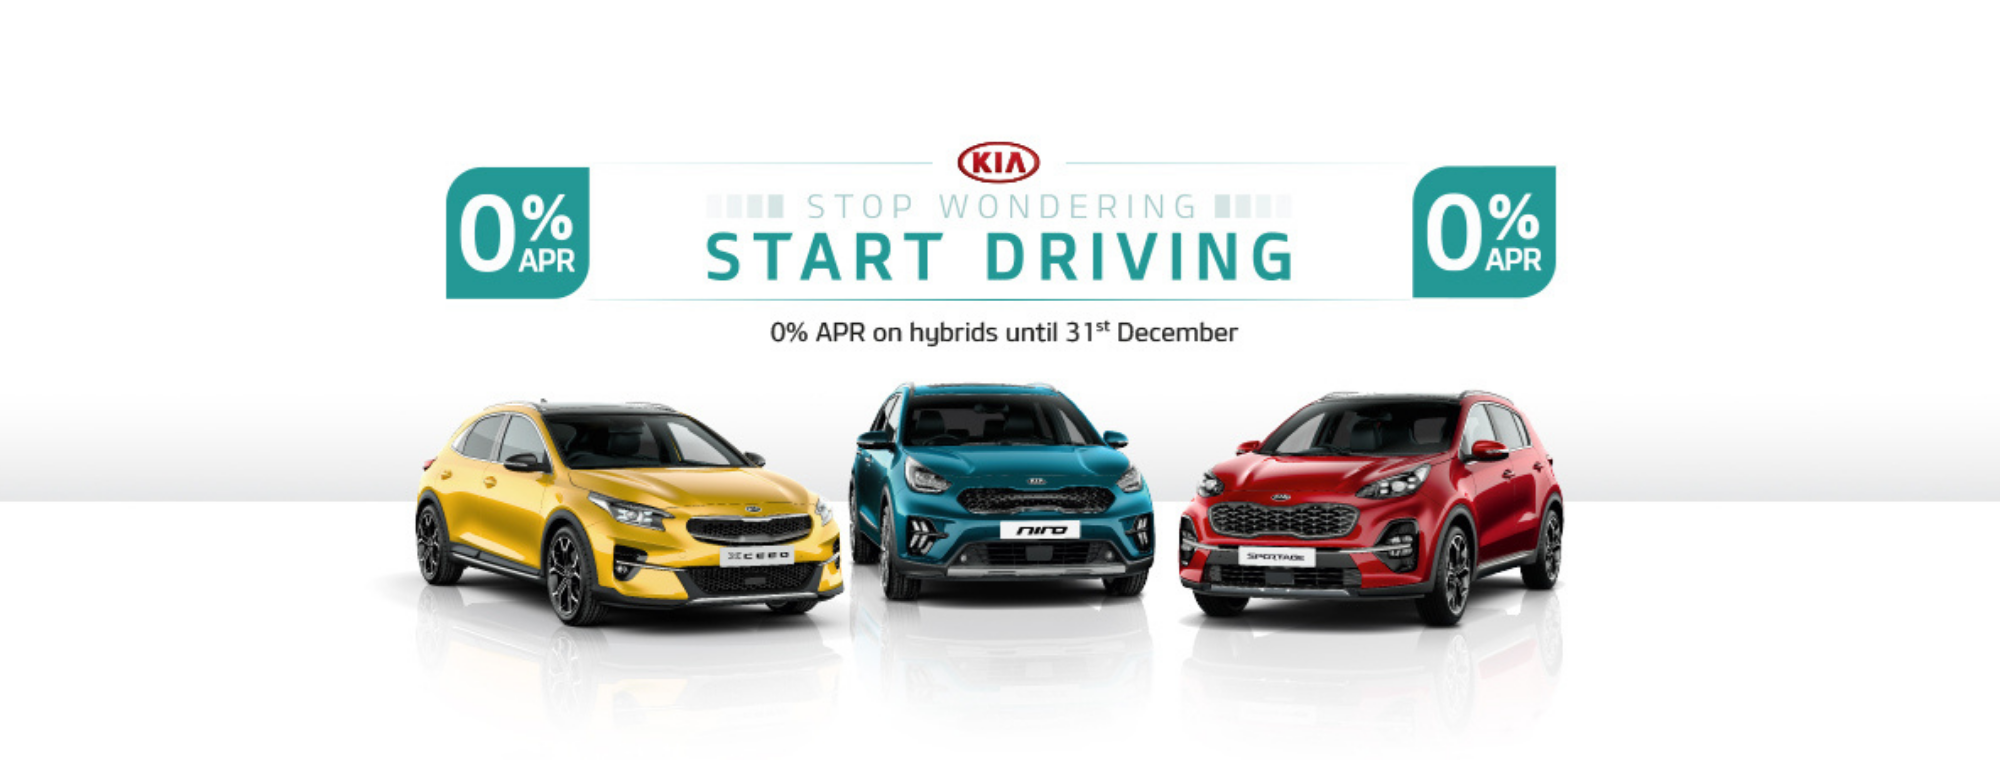 Kia Sportage, Xceed and Niro Hybrids with 0% APR at Chippenham Motor Company